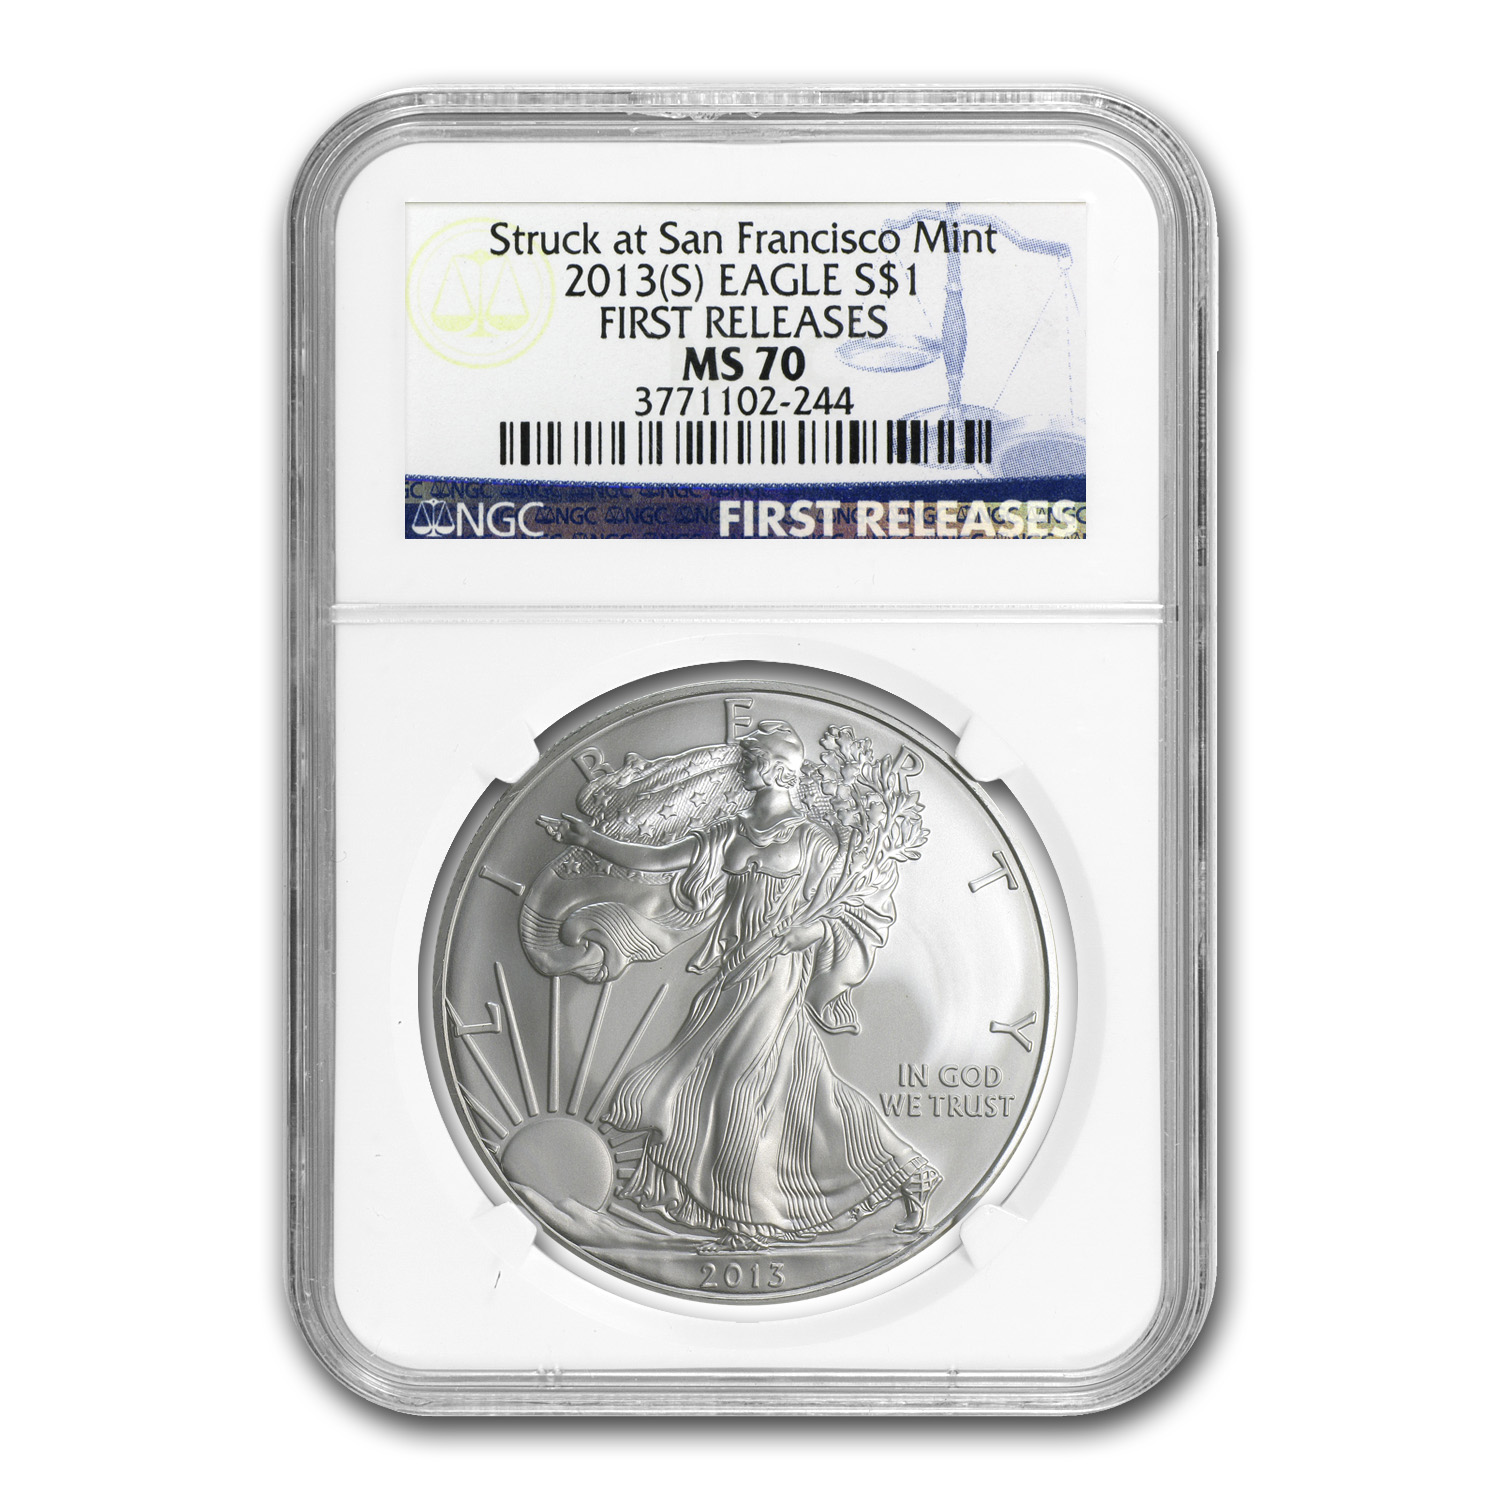 2013 (S) Silver American Eagle - MS-70 NGC - First Releases